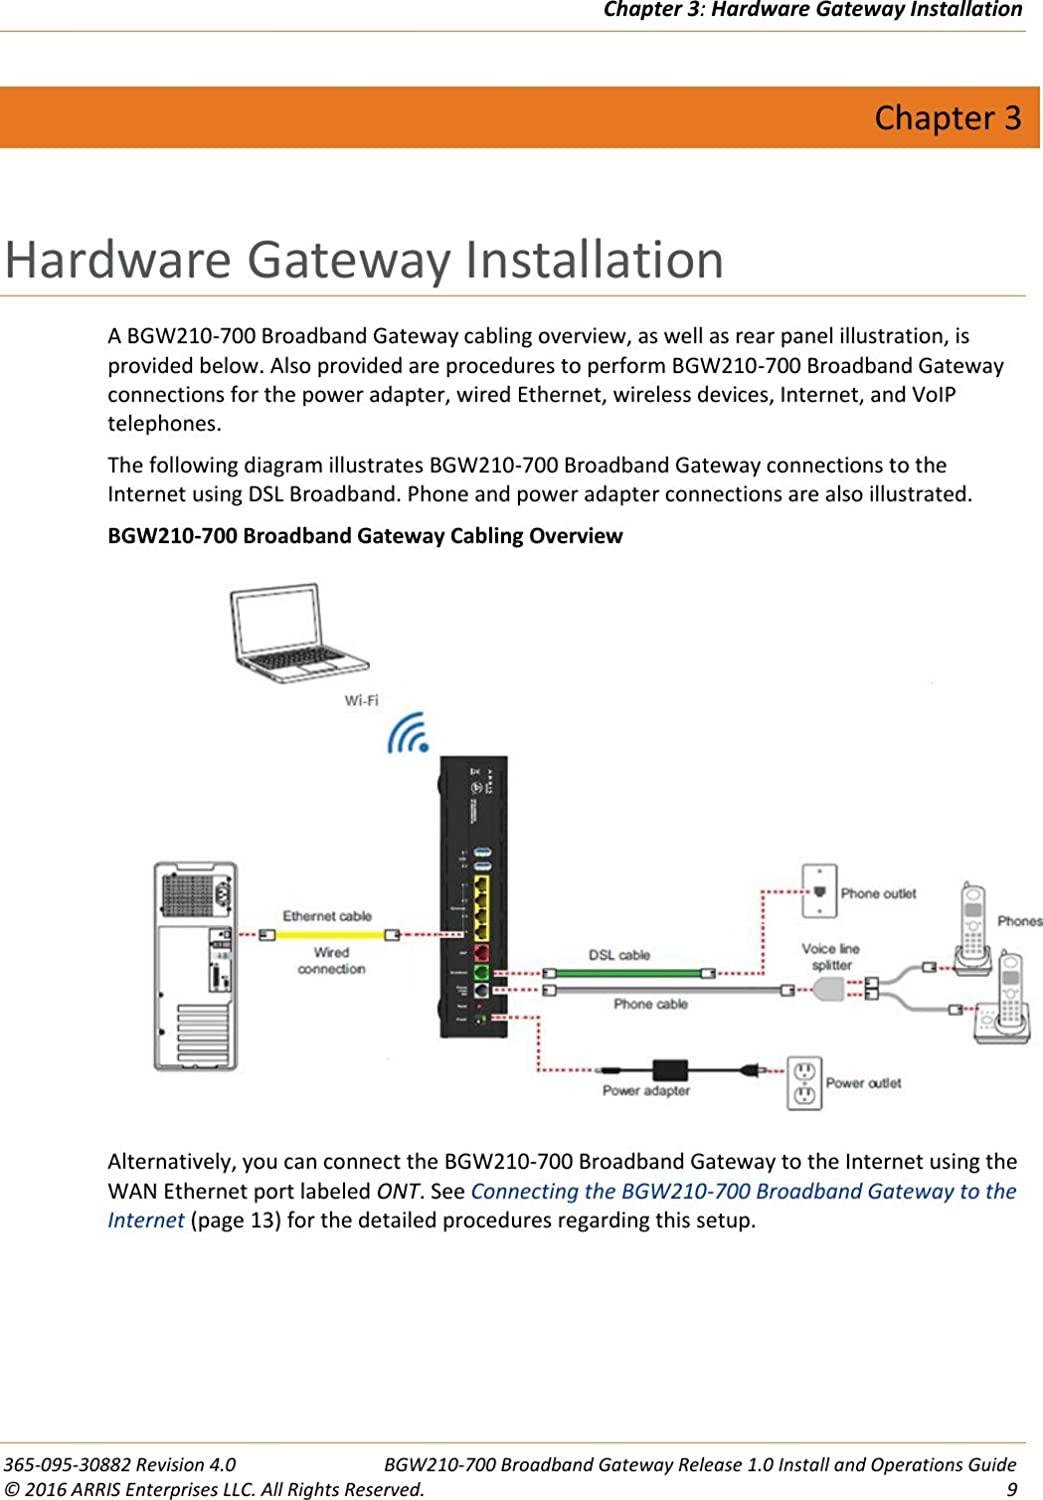 Amazon.com: AT&T Arris BGW210-700 802.11b/g/n/ac 400mW Bonded VDSL2 on broadband installation, dsl connection diagram, vip 222k installation diagram, internet network diagram, broadband service, cable internet diagram,